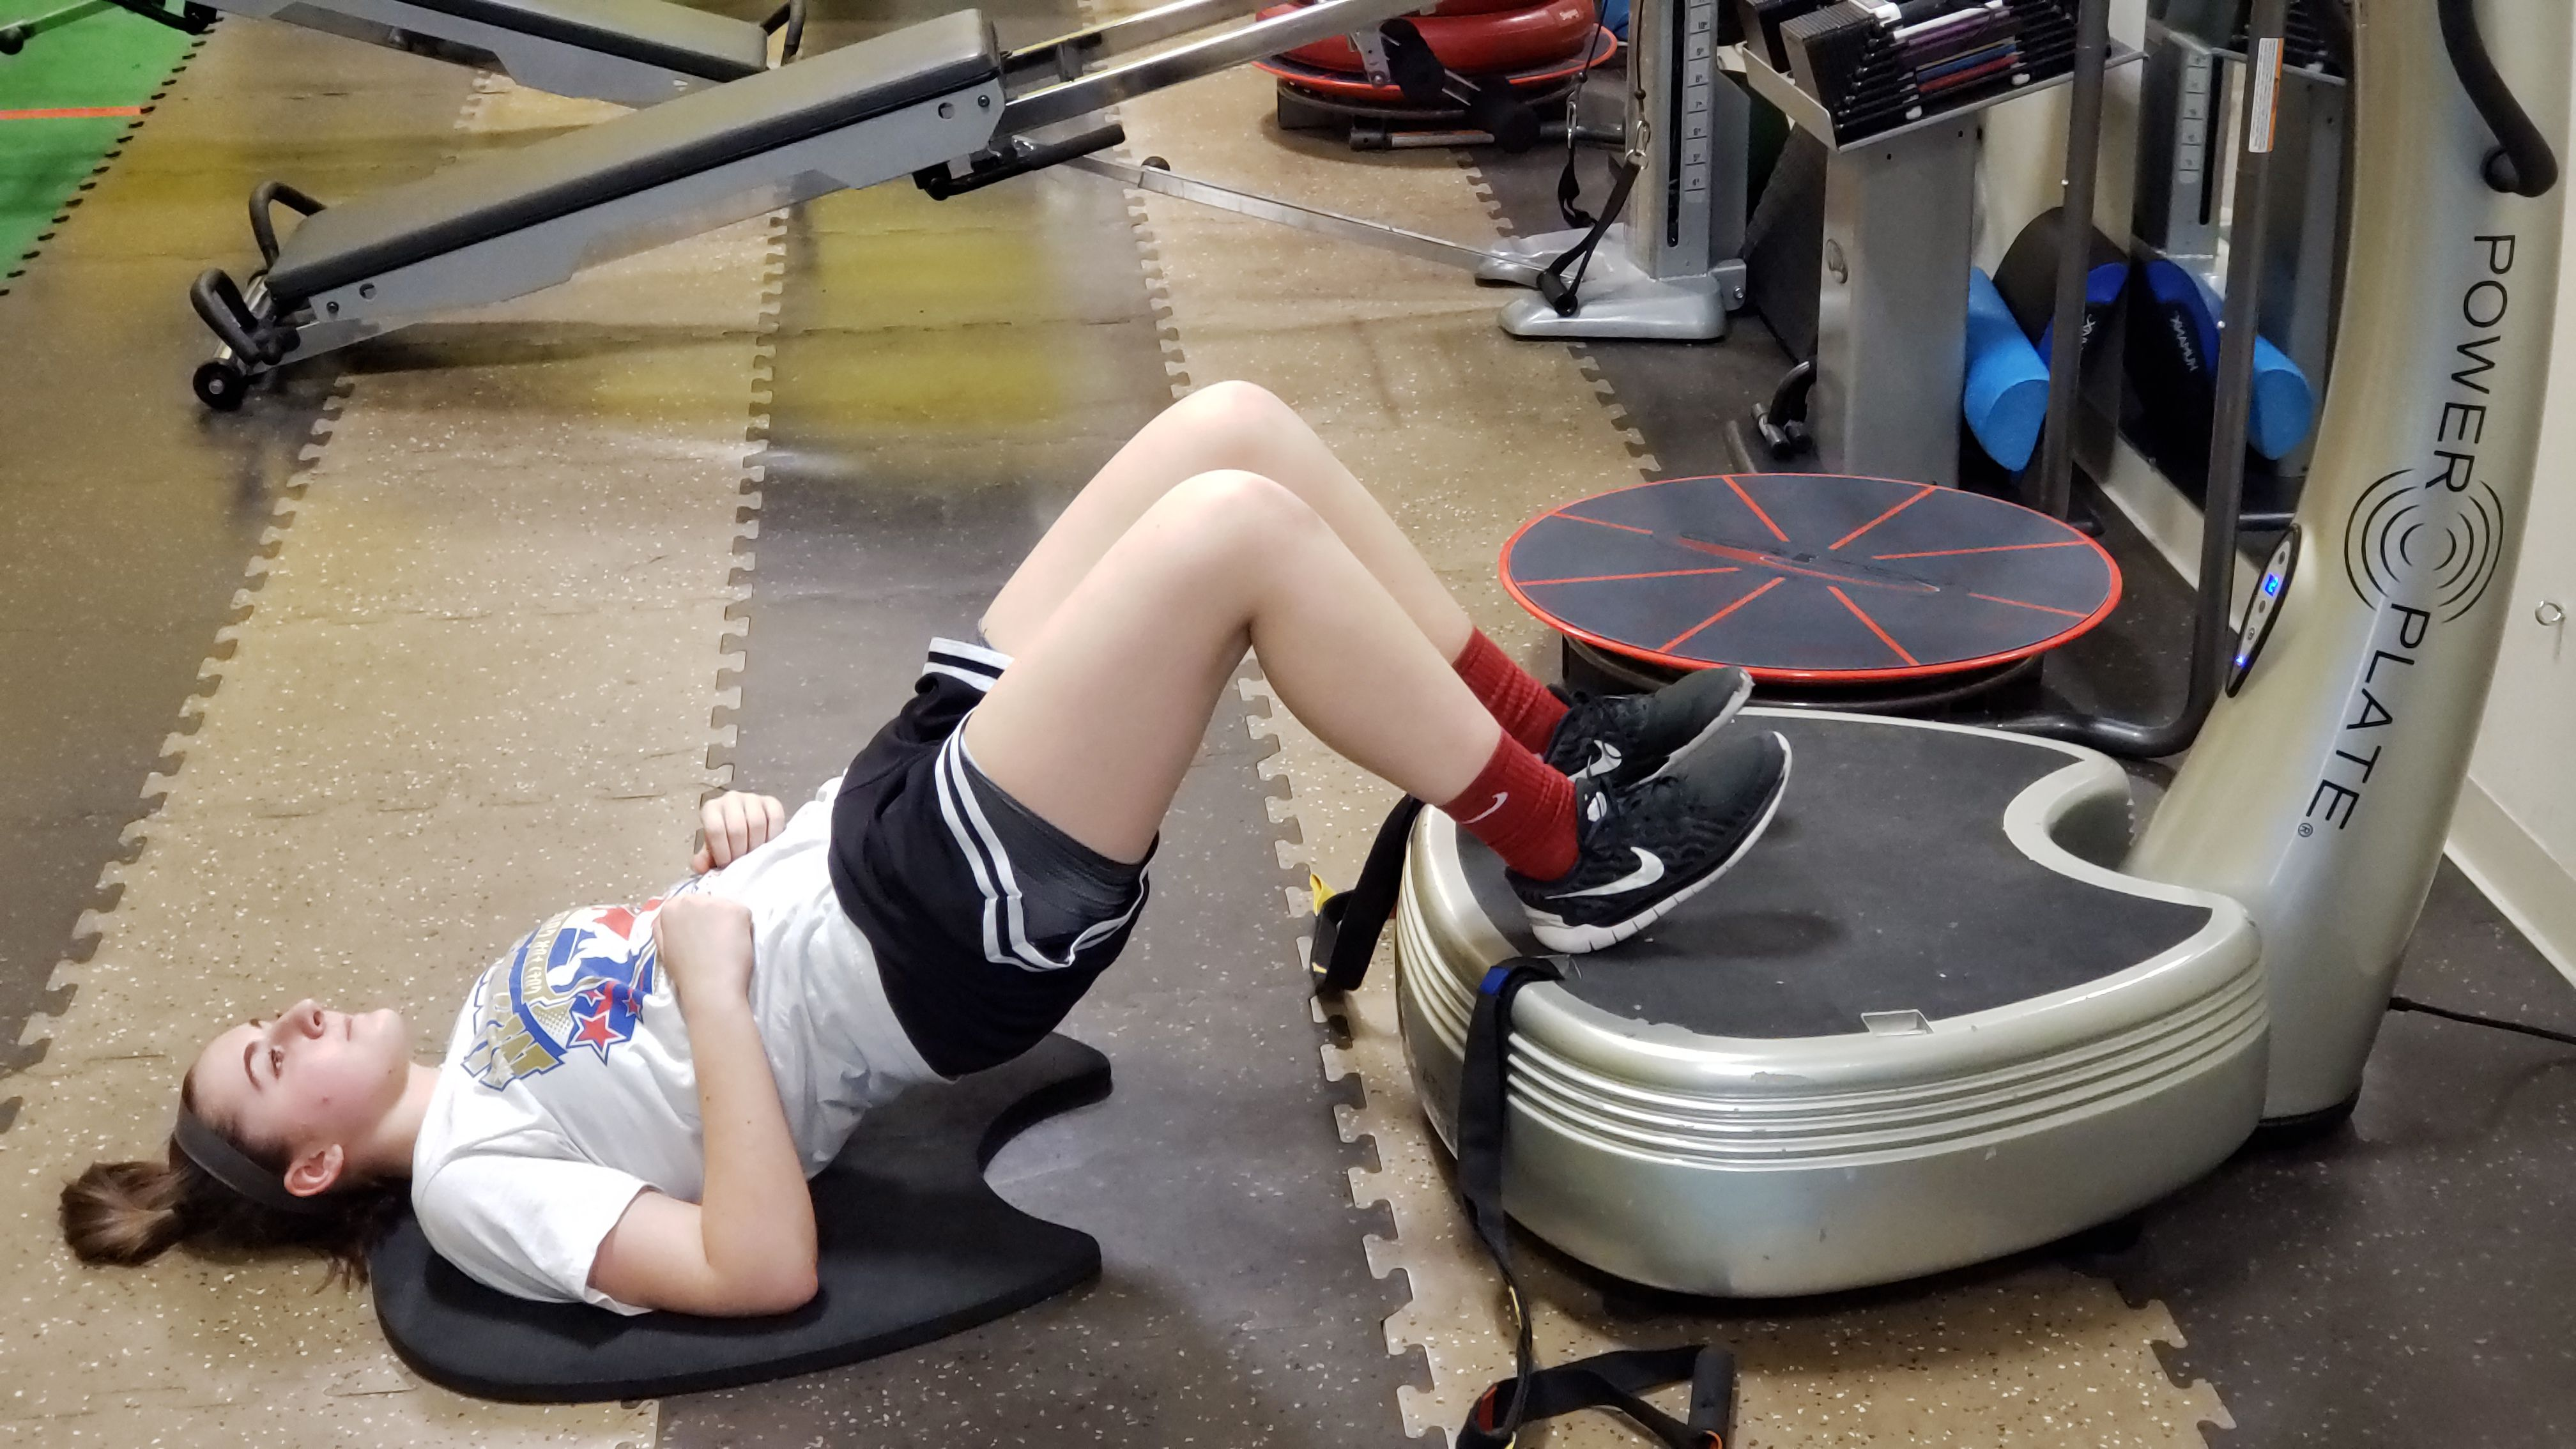 34247481e8a13 Acceleration Training with Power Plate machines creates instability in the  human body